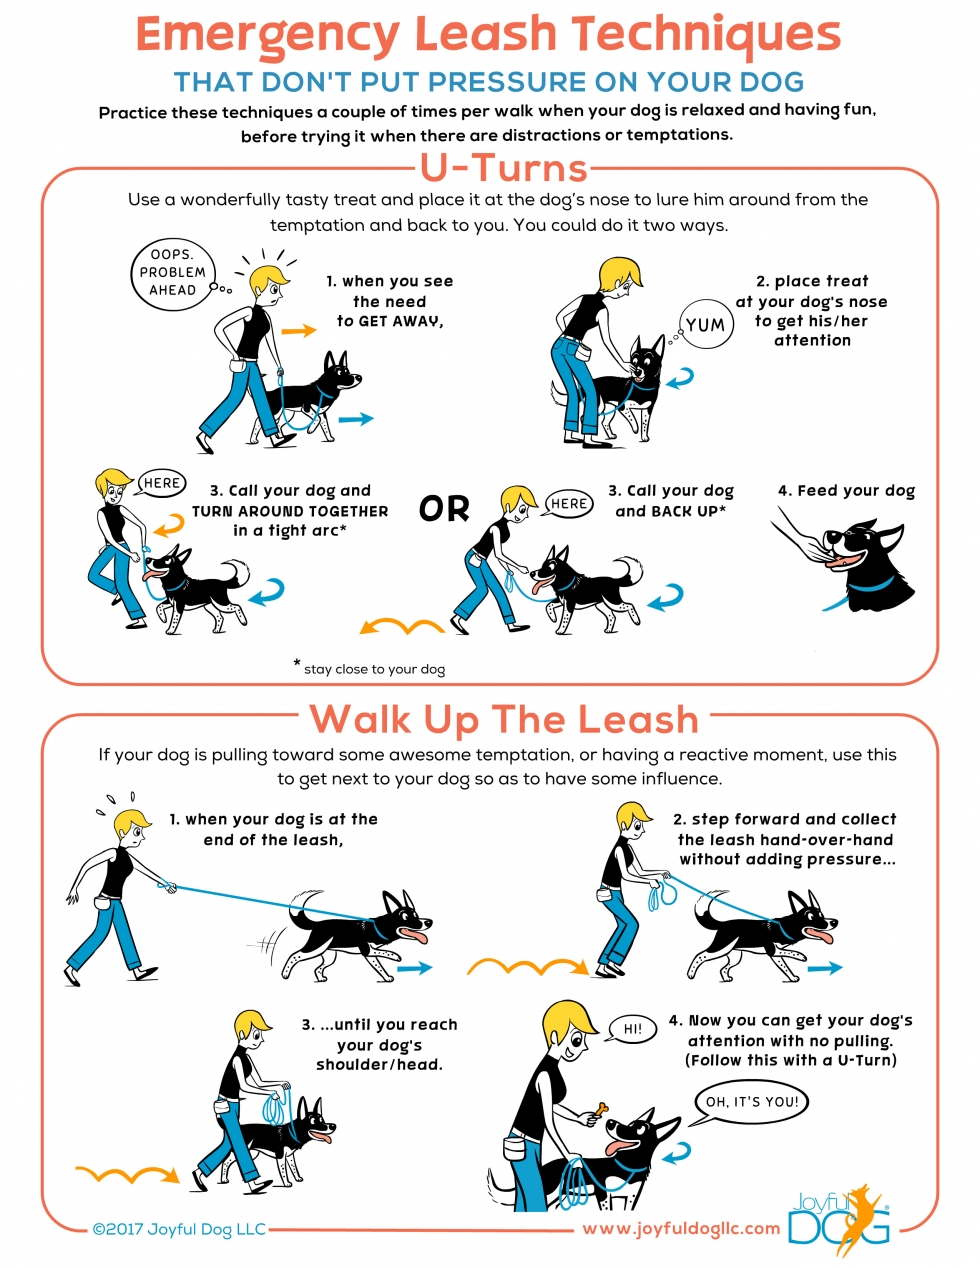 Emergency Leash Techniques